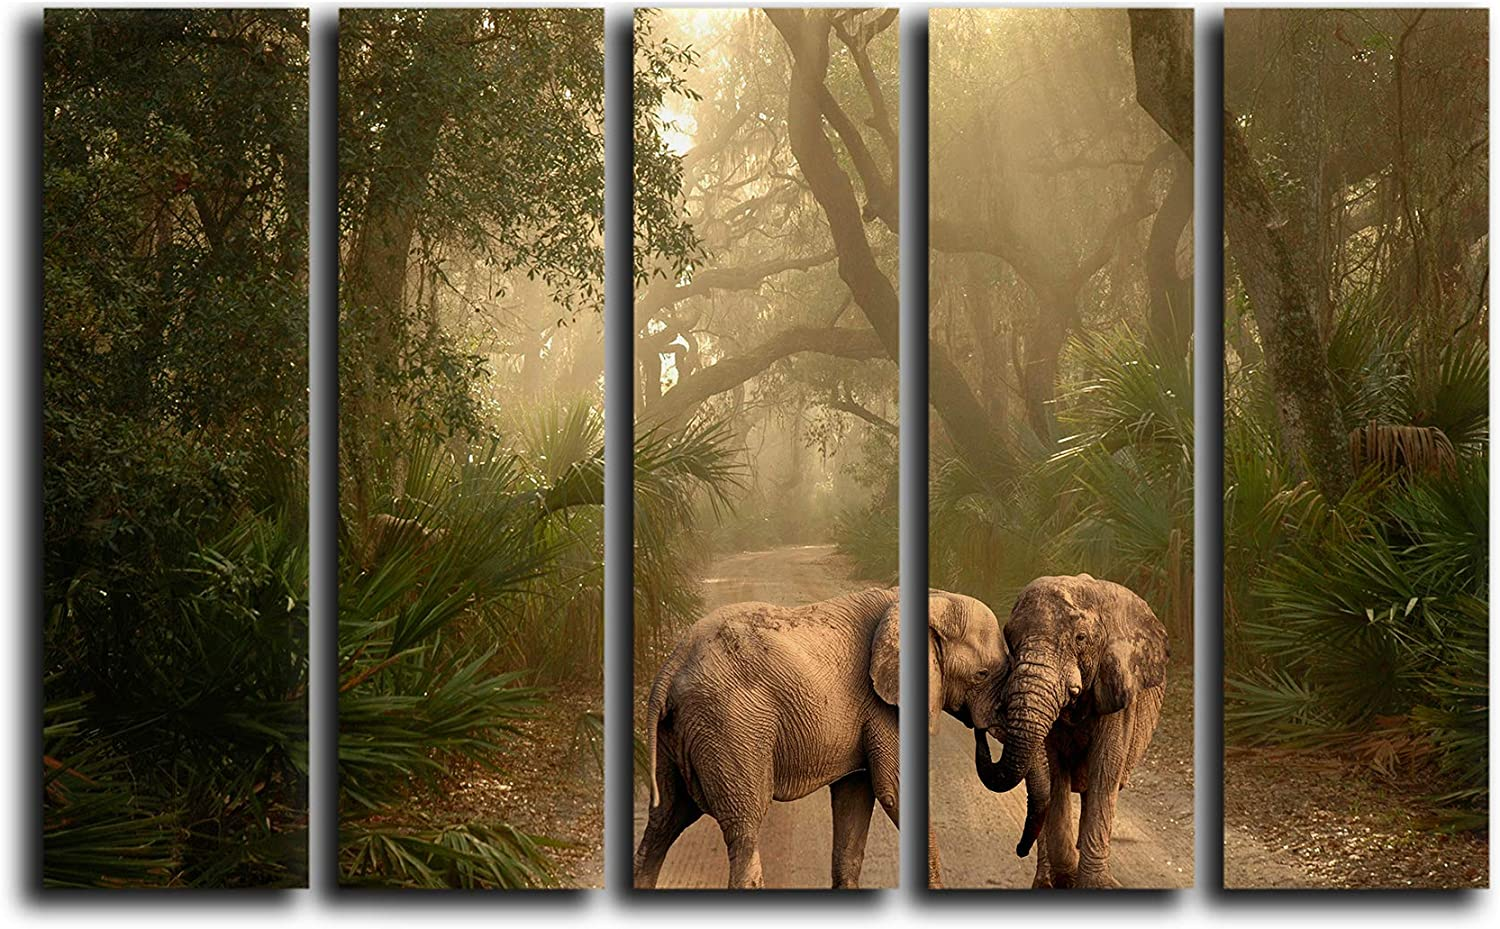 Large 5 Piece Elephants in Rainforest Wall Art Decor Picture Painting Poster Print on Canvas Panels Pieces - Nature Theme Wall Decoration Set - Wilde Nature Wall Picture for Creative Space 5p, 35x55